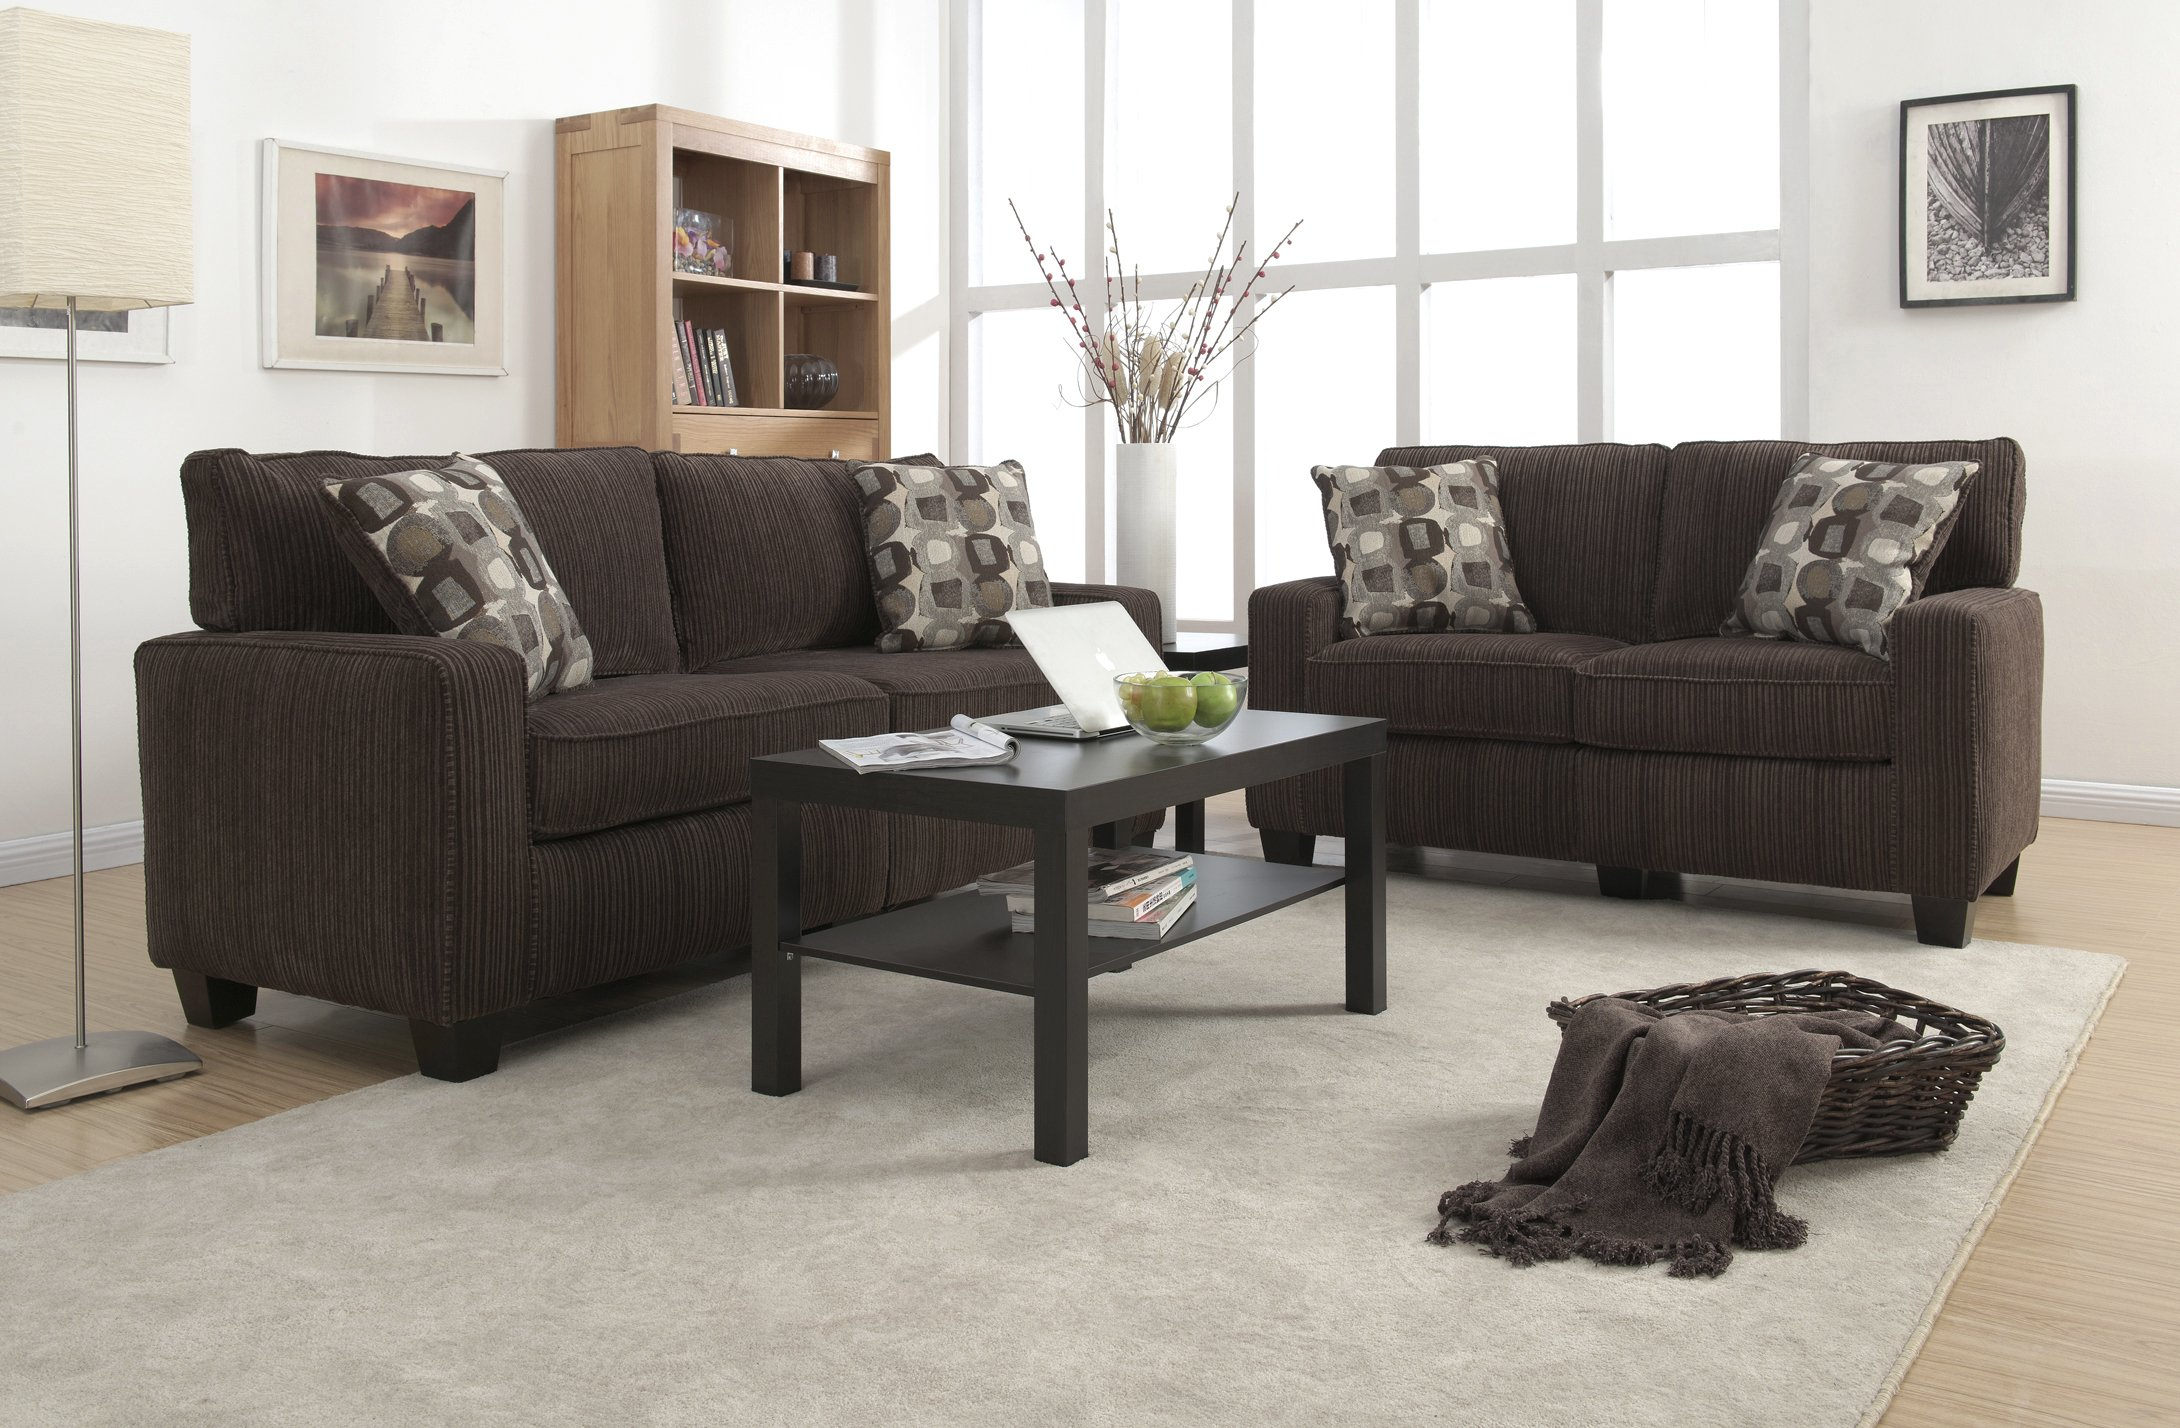 Serta RTA Palisades Collection 61'' Loveseat in Riverfront Brown by Serta (Image #3)